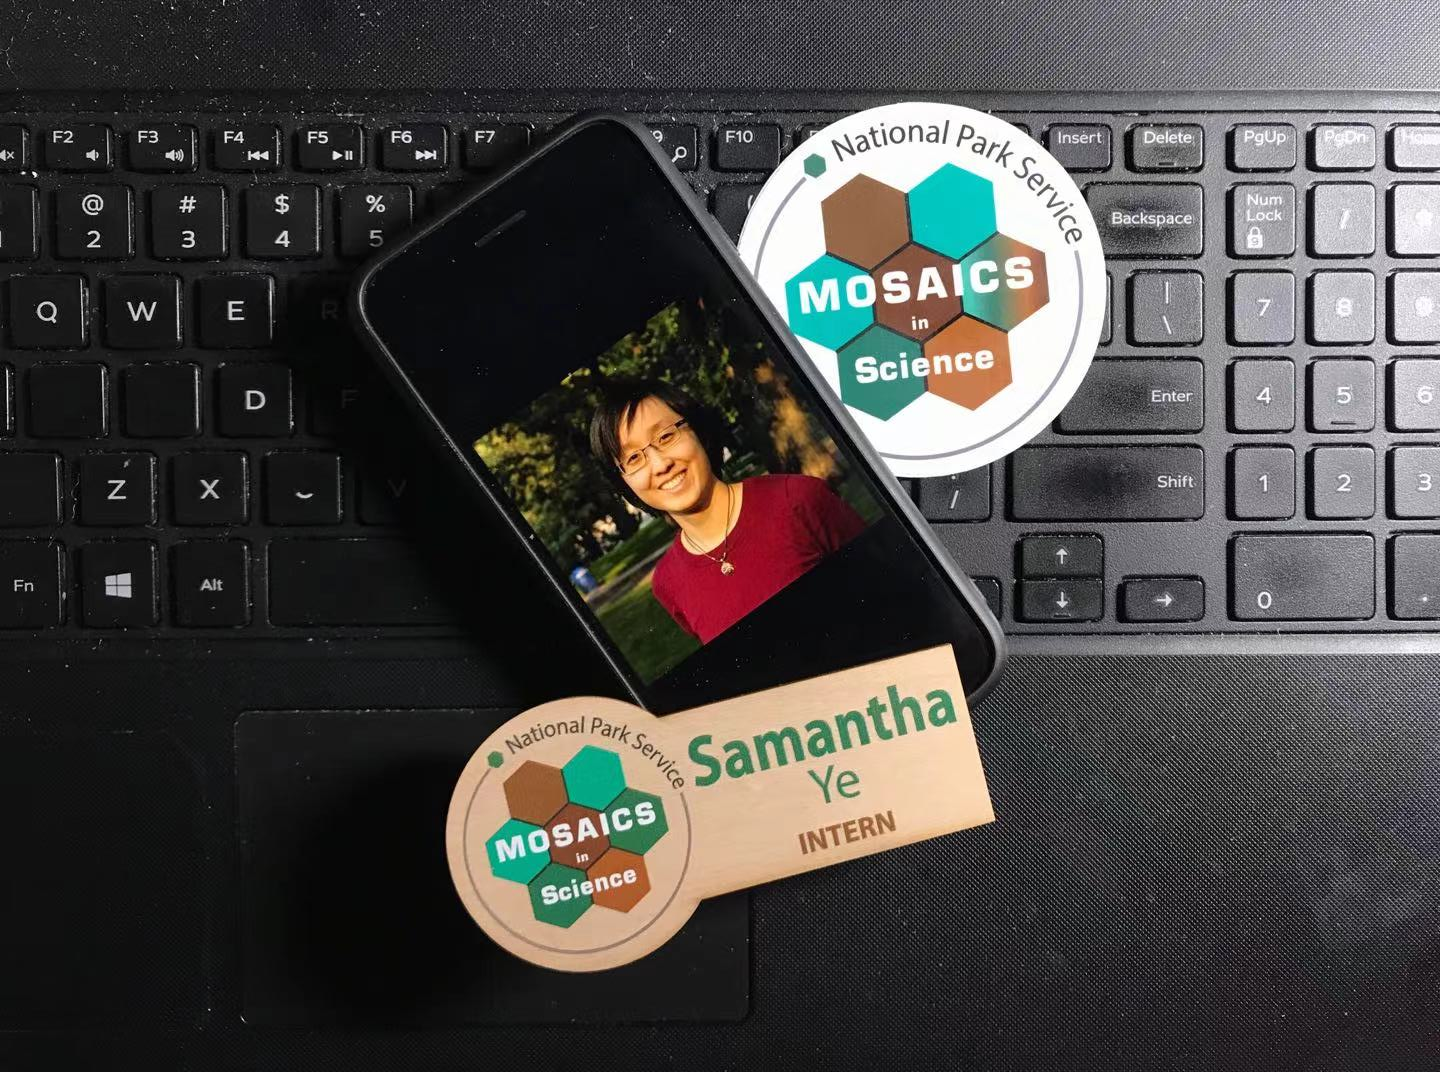 Phone, MIS sticker and name tage for Samantha Ye on top of a laptop keyboard